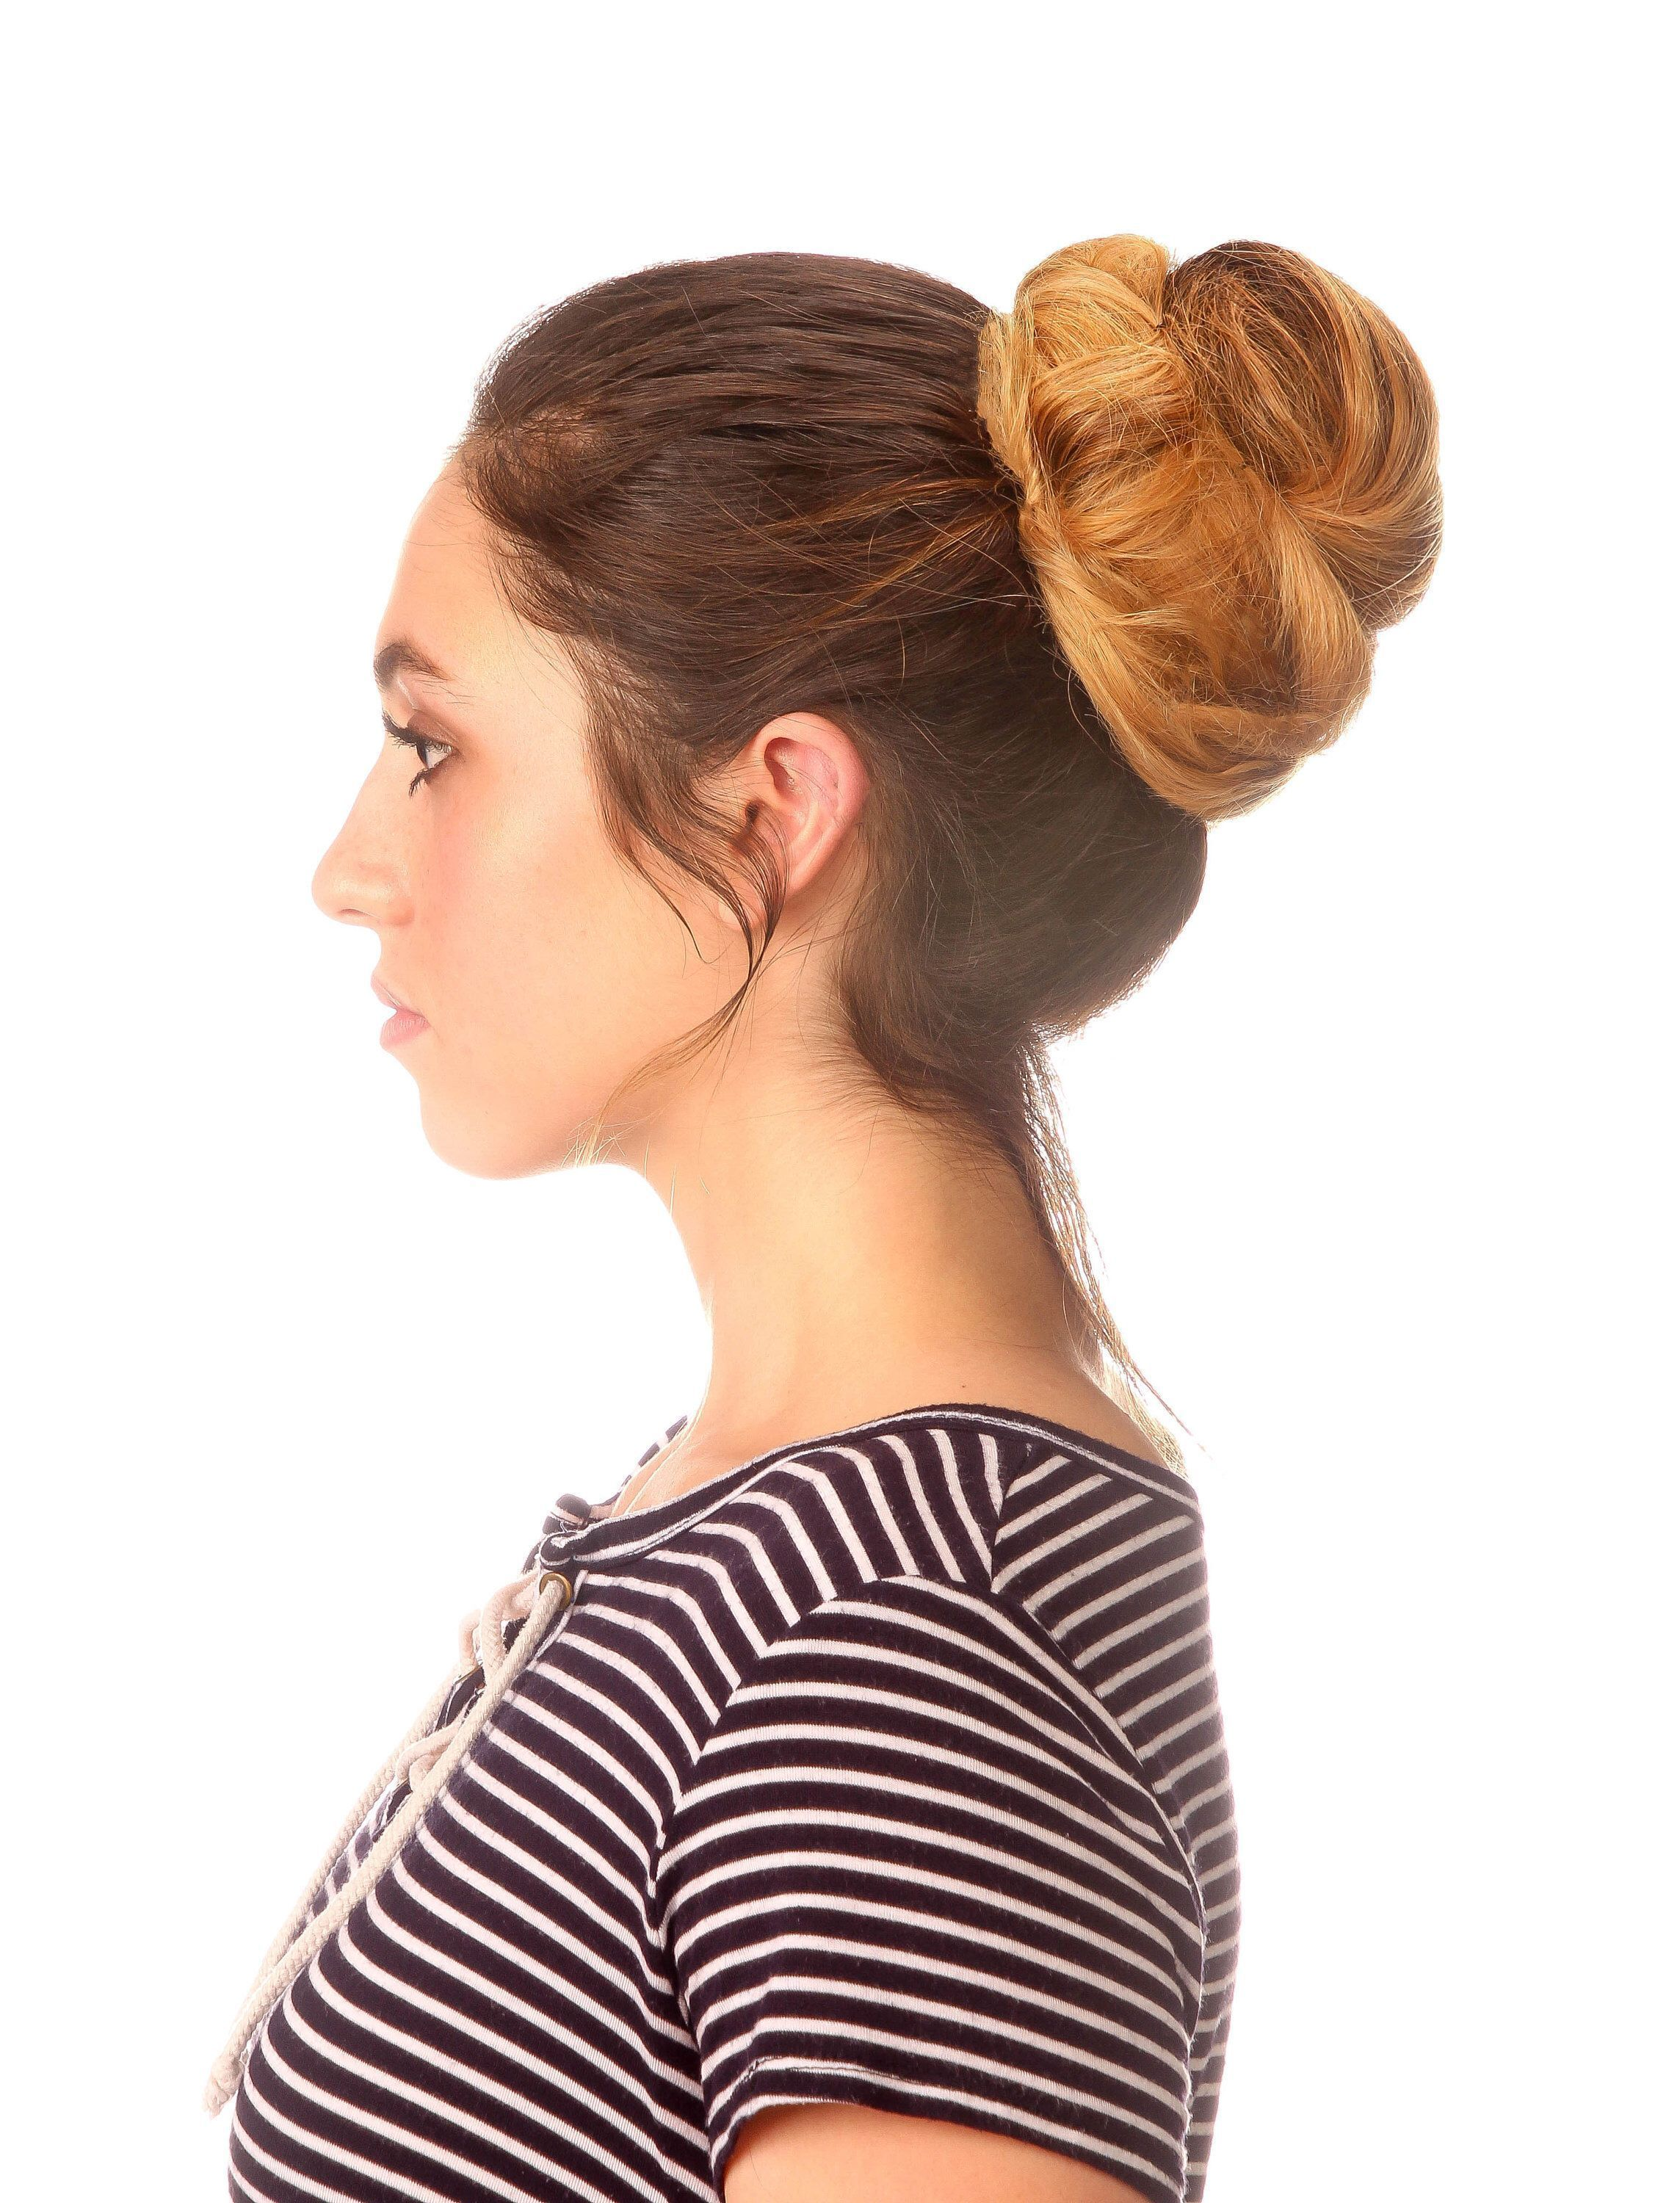 3-Pack Bun Maker Set, Hair Accessories For Women, New Hair Accessory, Messy Bun How-To, Ponytail Enhancer, Fuller Longer Ponytail, Ponytails #fullerponytail Excited to share the latest addition to my #etsy shop: 3-Pack Bun Maker Set, Hair Accessories For Women, New Hair Accessory, Messy Bun How-To, Ponytail Enhancer, Fuller Longer Ponytail, Ponytails #accessories #hair #bunhairstyles #mothersdaygift #forwomen #hairaccessories #bigponytails #weddinghairstyles #fullerponytail 3-Pack Bun Maker Set, #fullerponytail